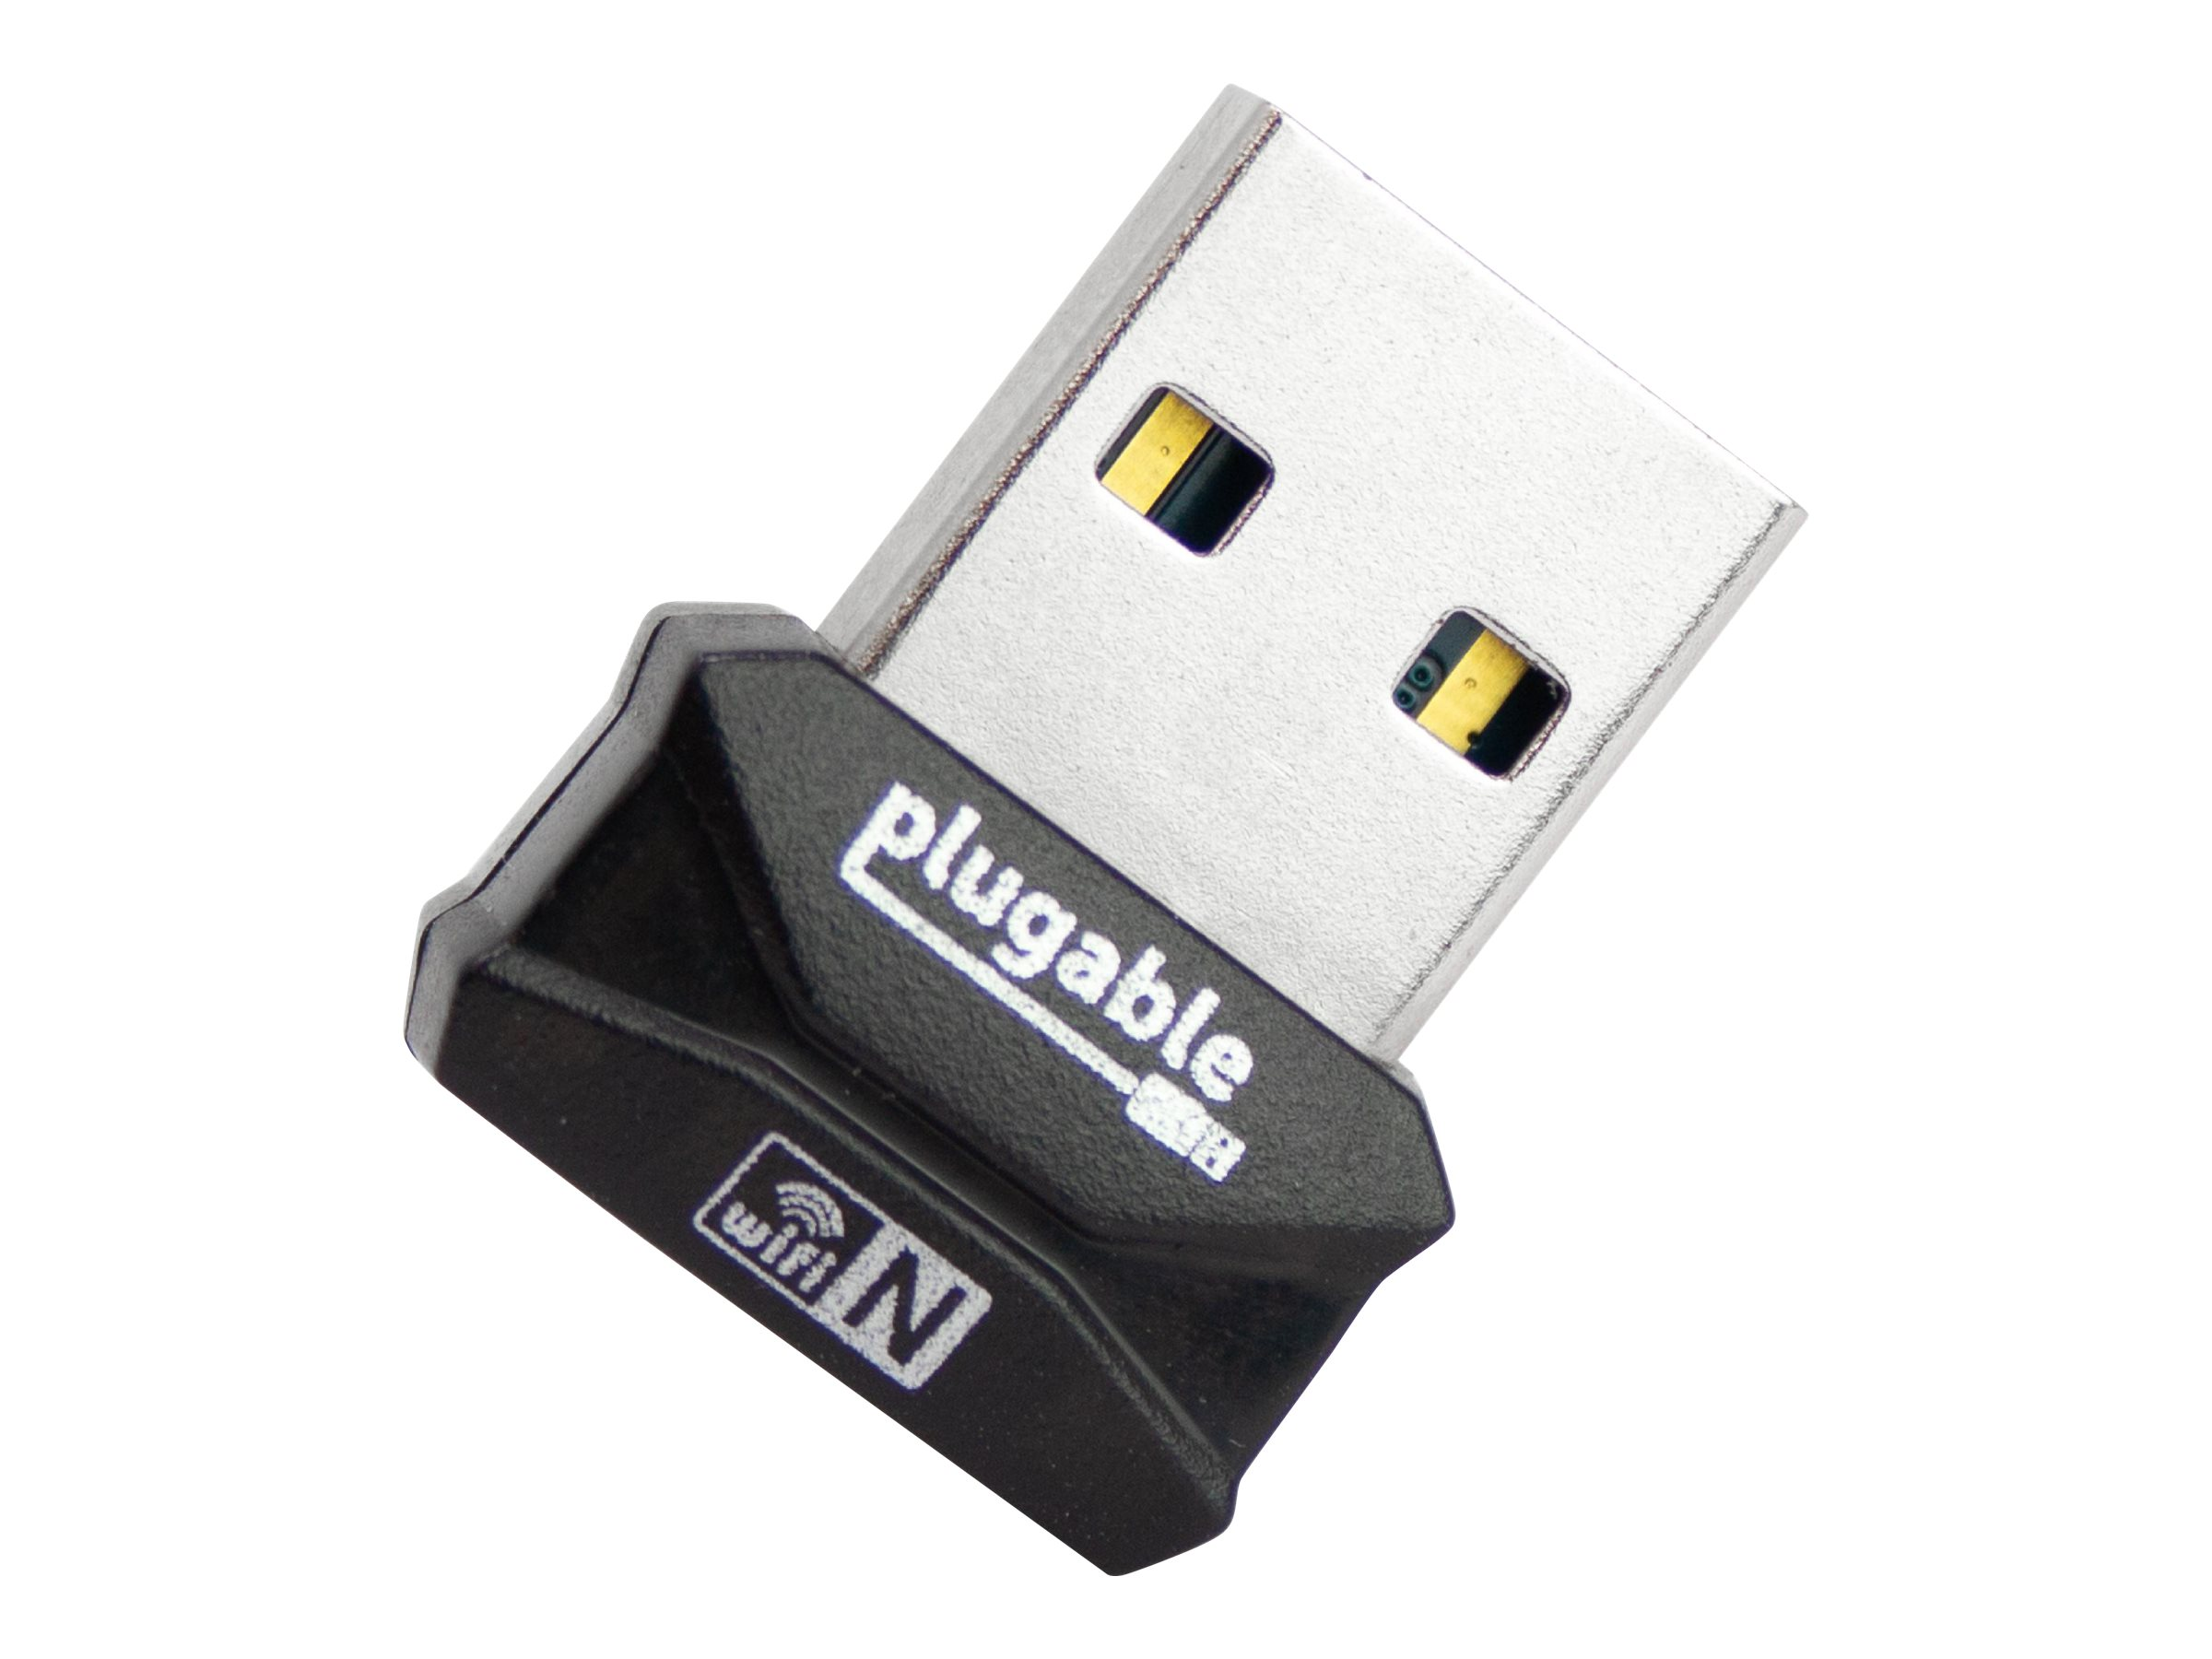 Plugable USB-WIFINT - network adapter - USB 2.0